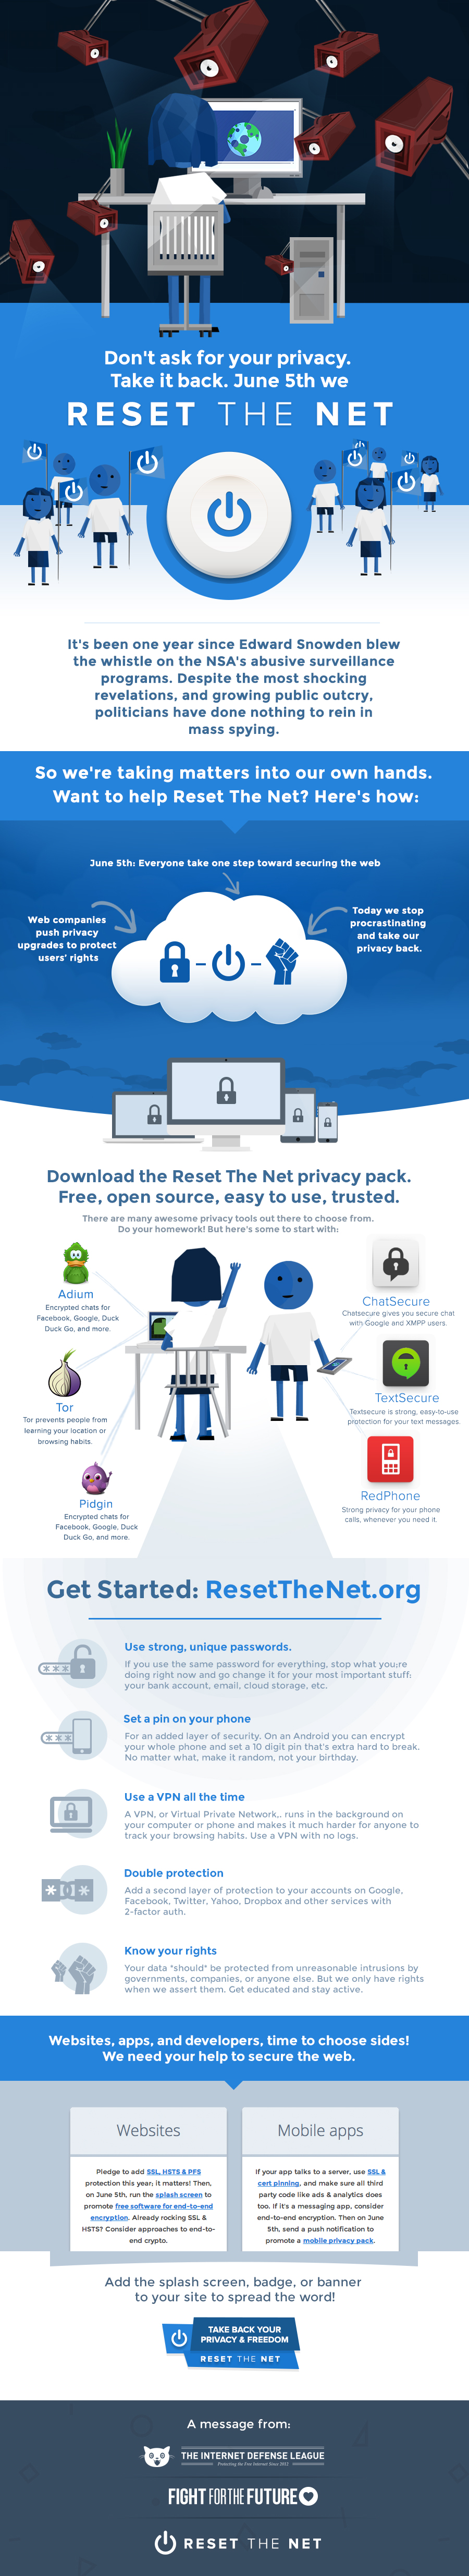 Infographic: Take back privacy - Reset the Net!